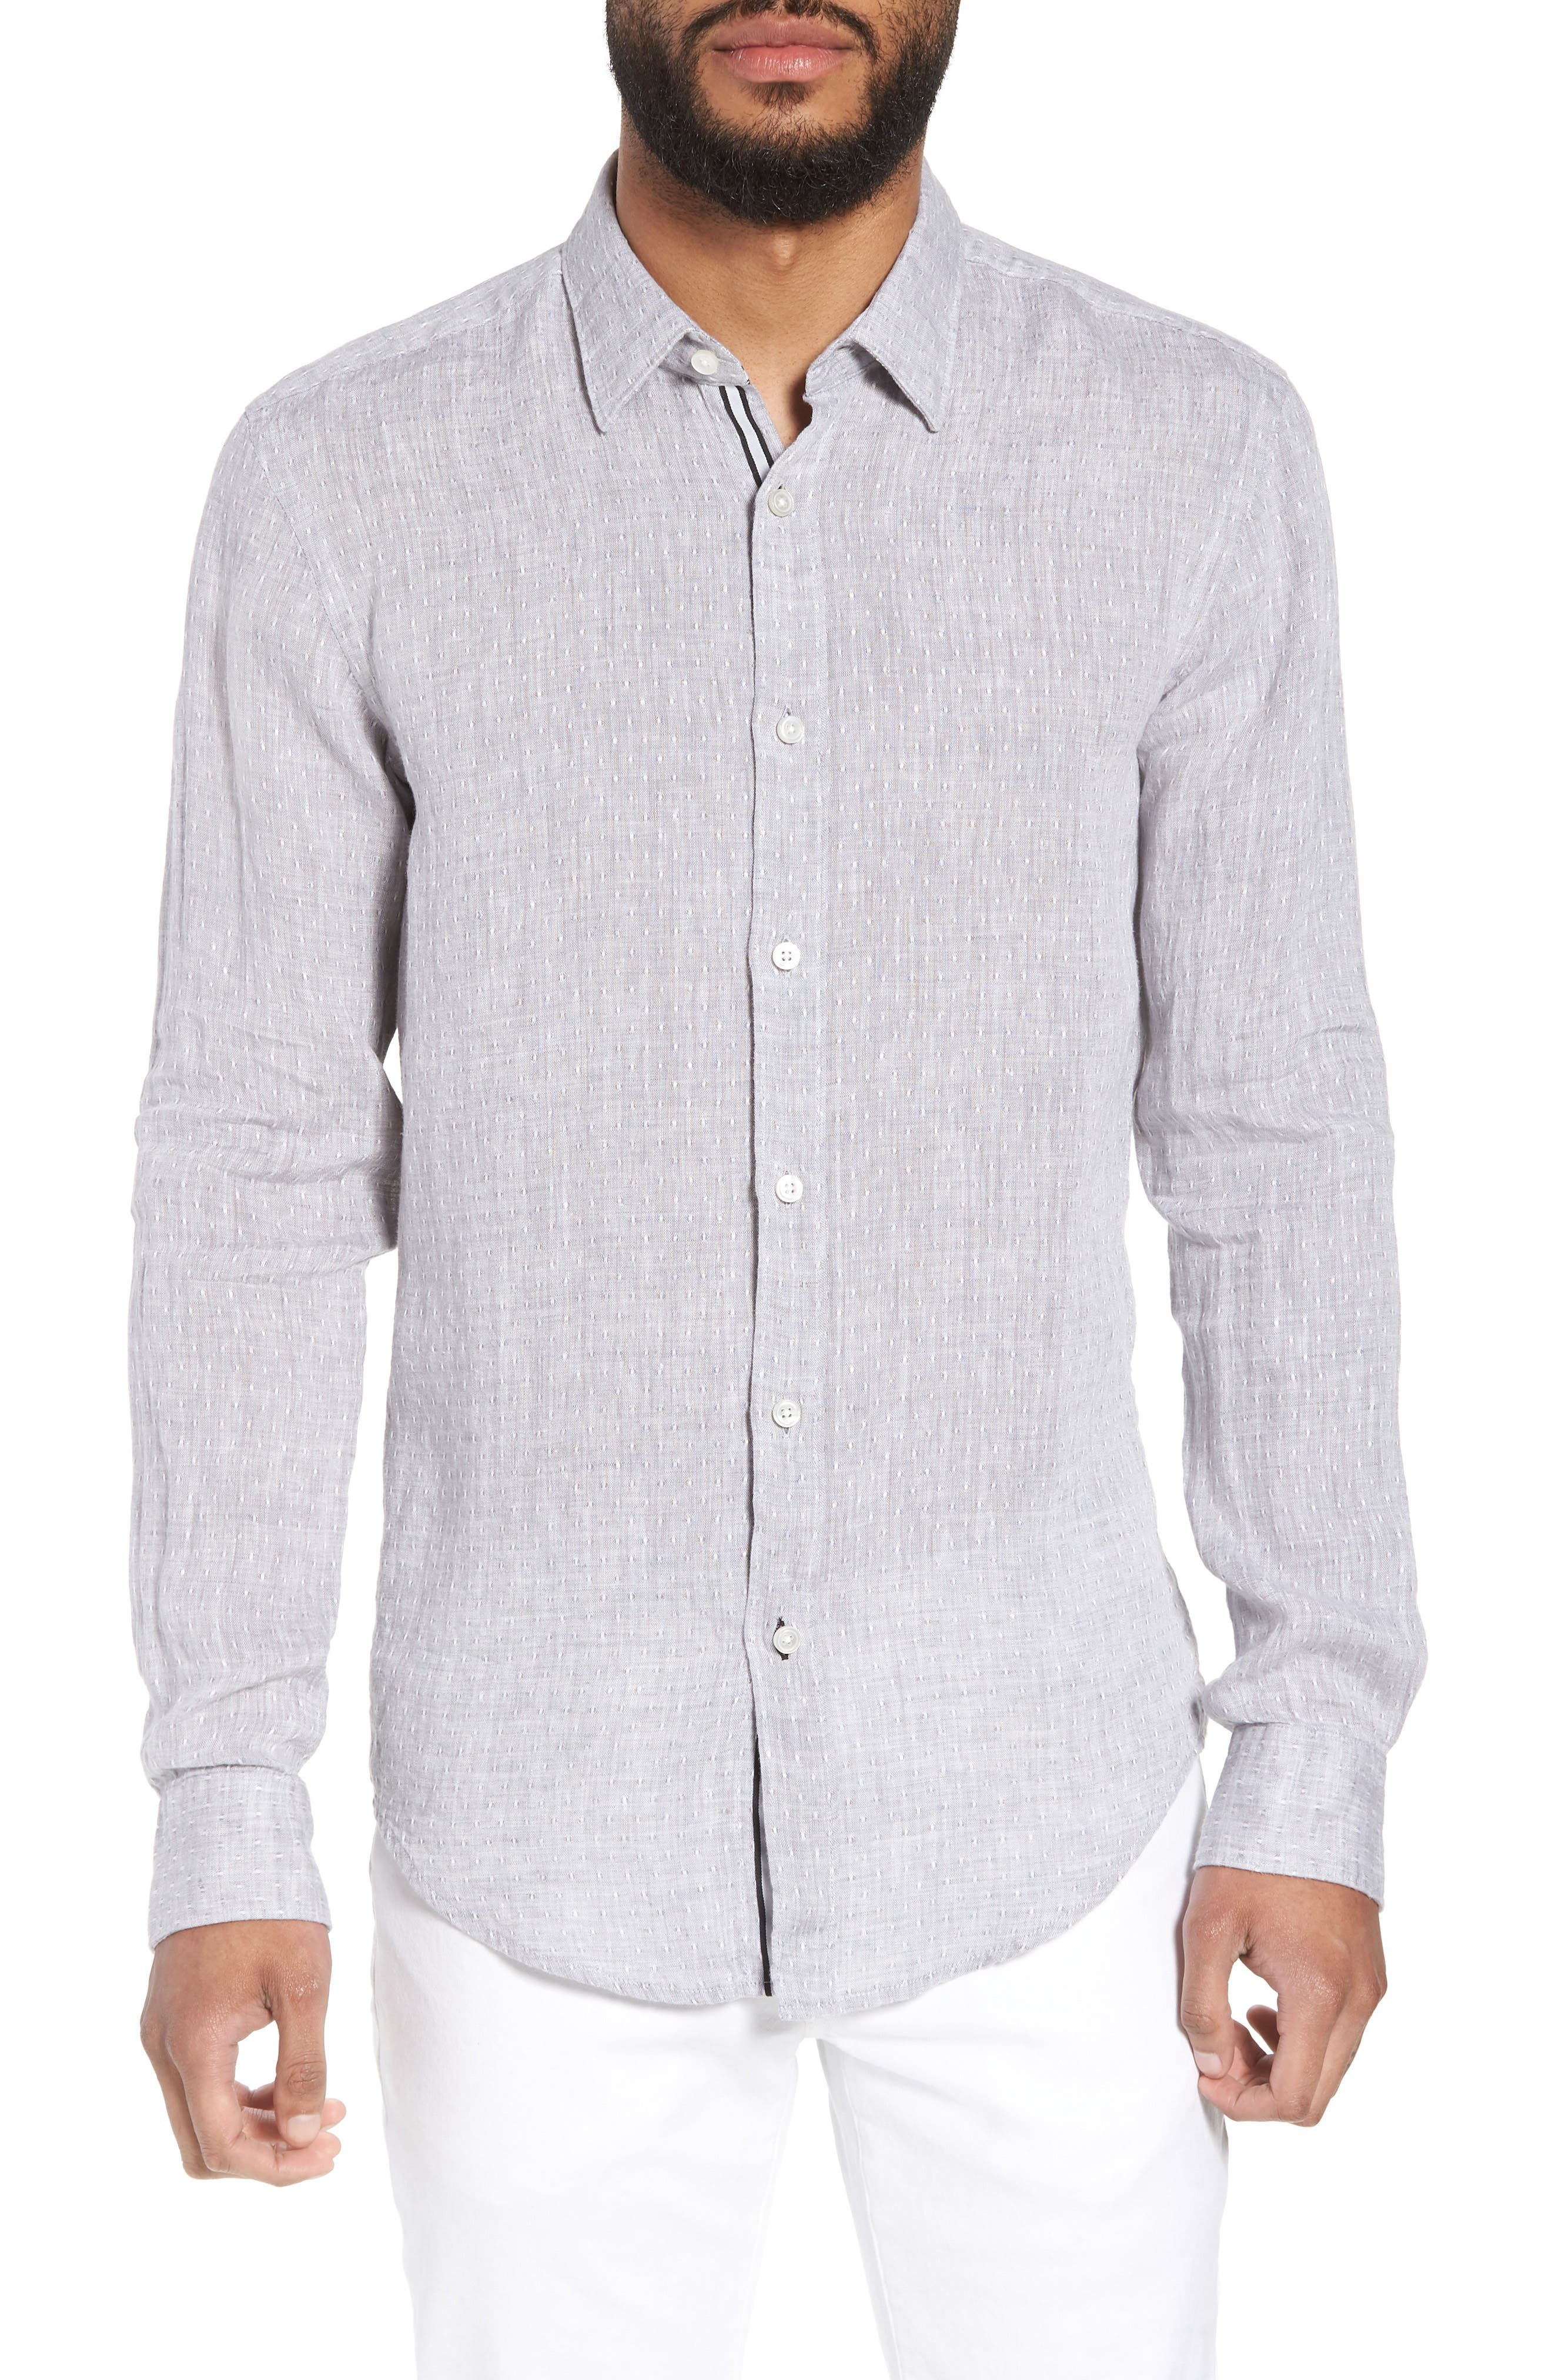 Ronni Slim Fit Dobby Linen Sport Shirt,                             Main thumbnail 1, color,                             Grey